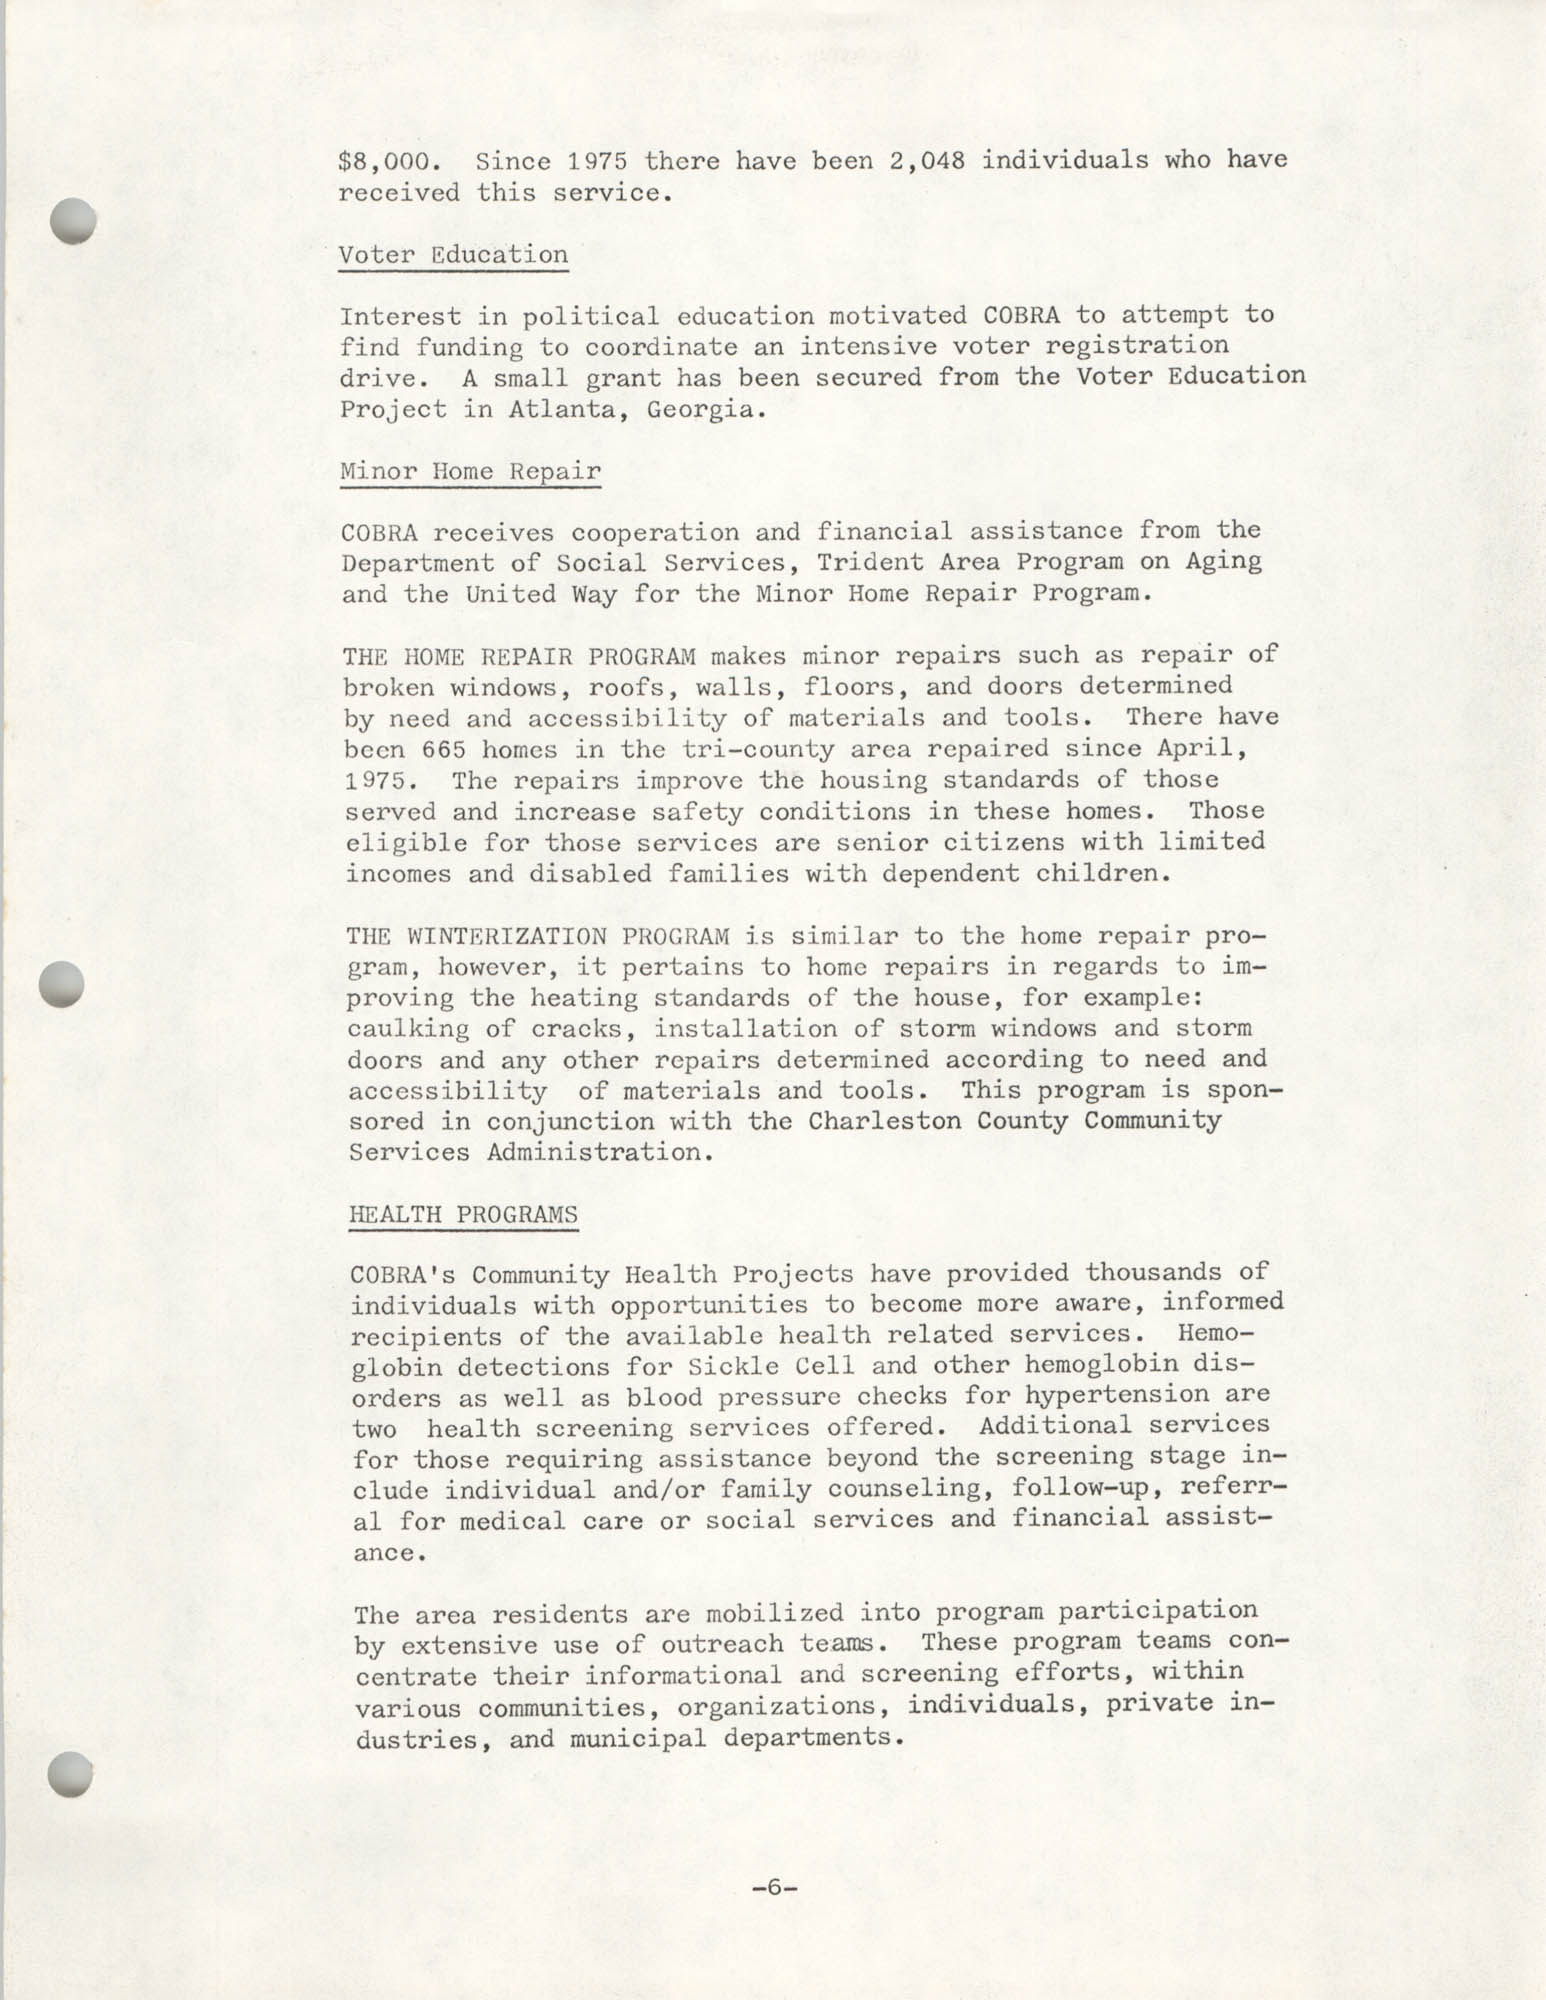 Organizational Information for COBRA, Page 6